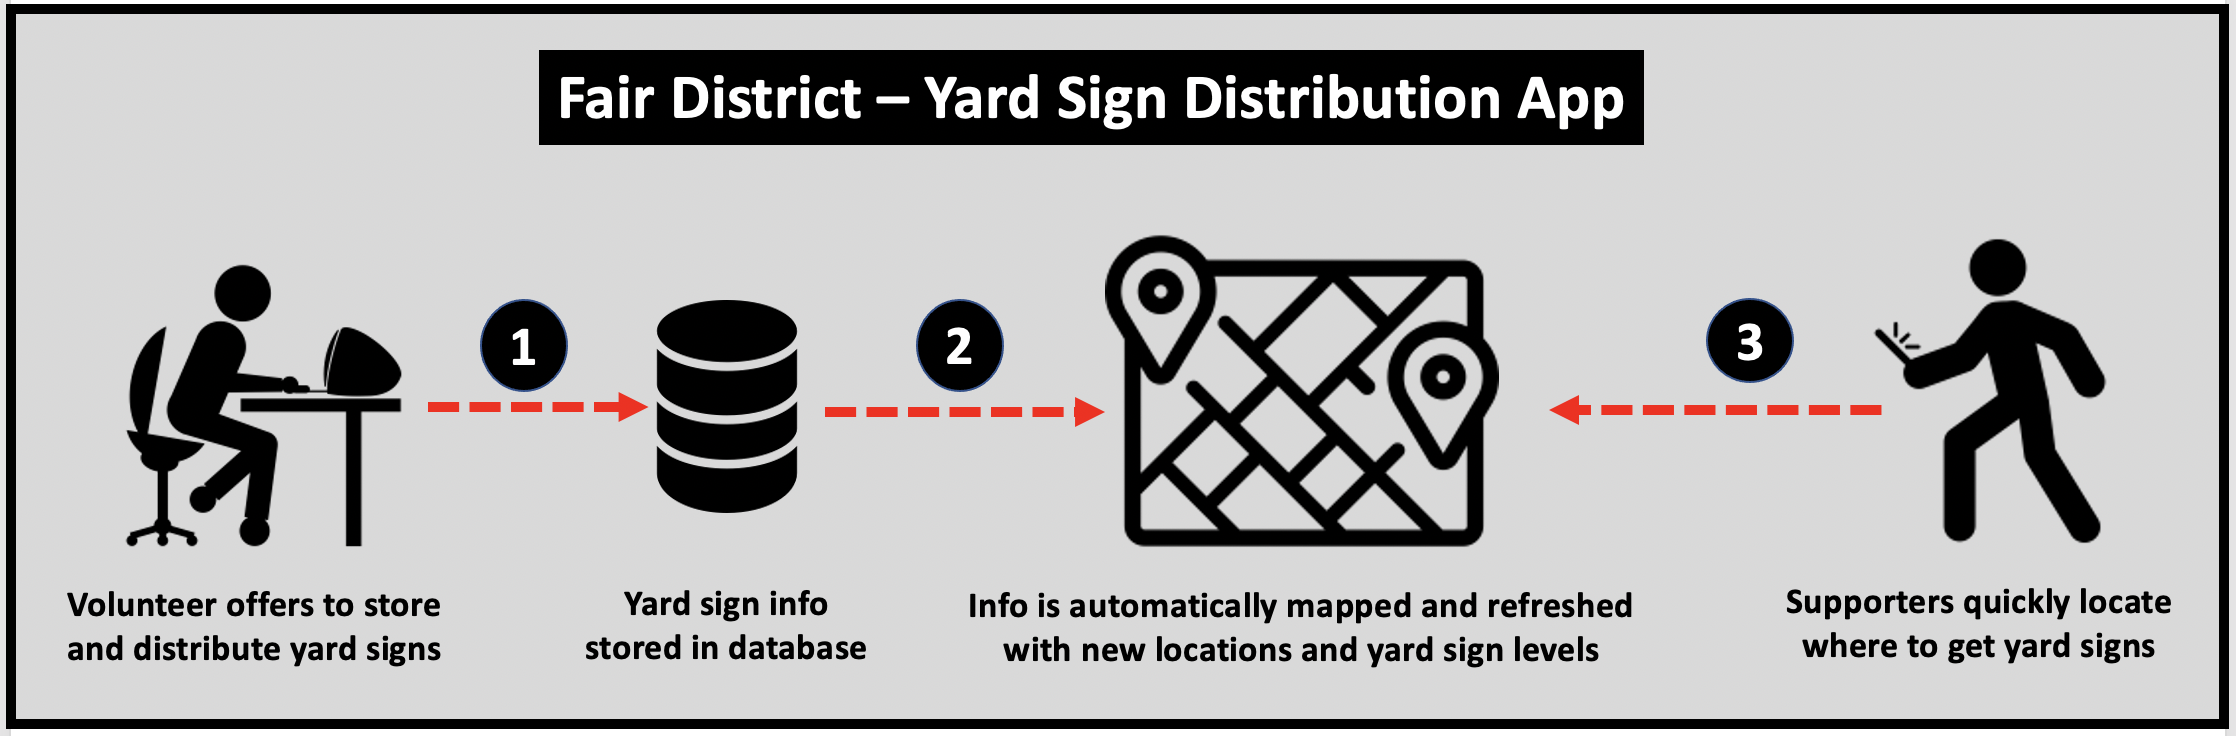 Fair District yard sign distribution system uses ArcGIS to make it easy to locate the closest location to get a yard sign.